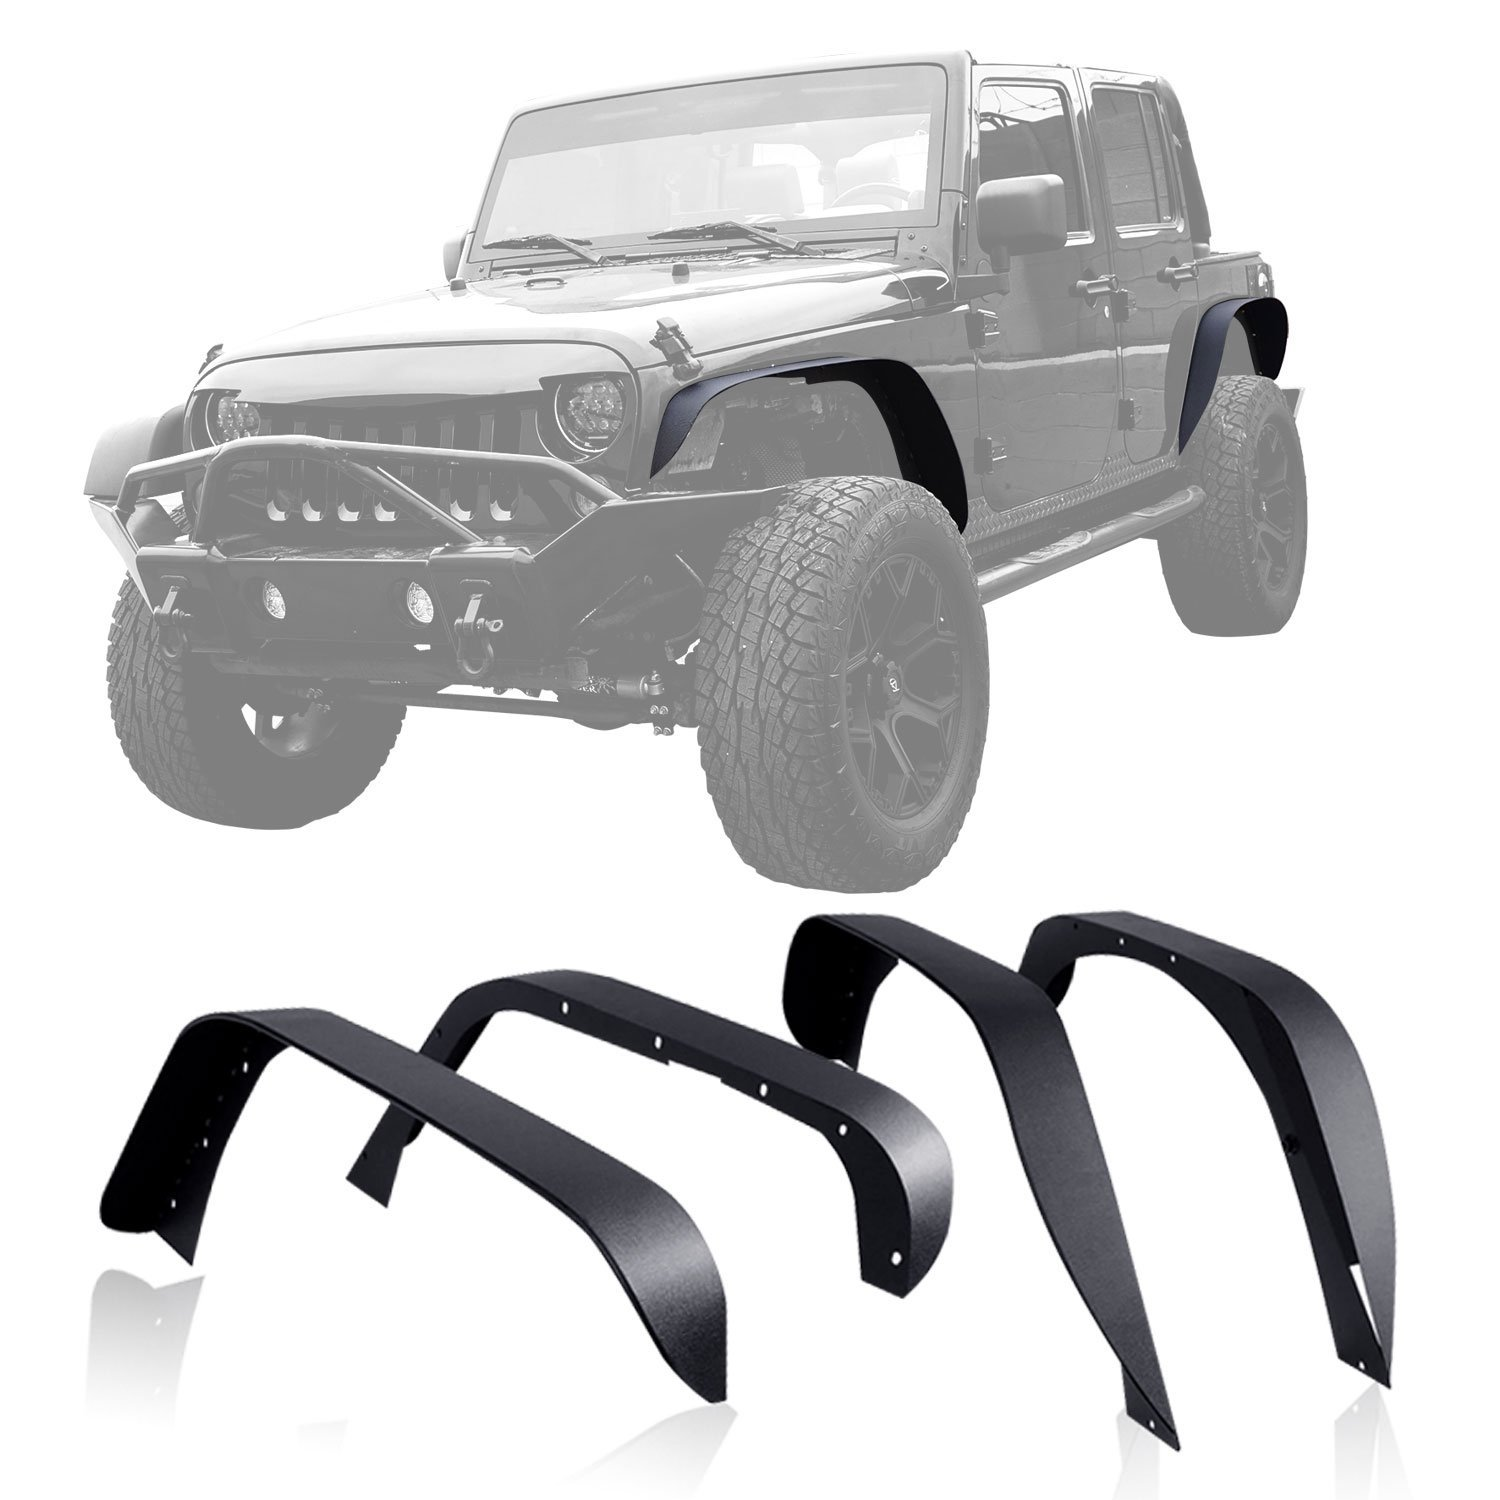 Set  J064 Tuxtured Steel Flat Style Fender Flares 2007-2017 For Jeep Wrangler JK Unlimited Auto Products Lantsun